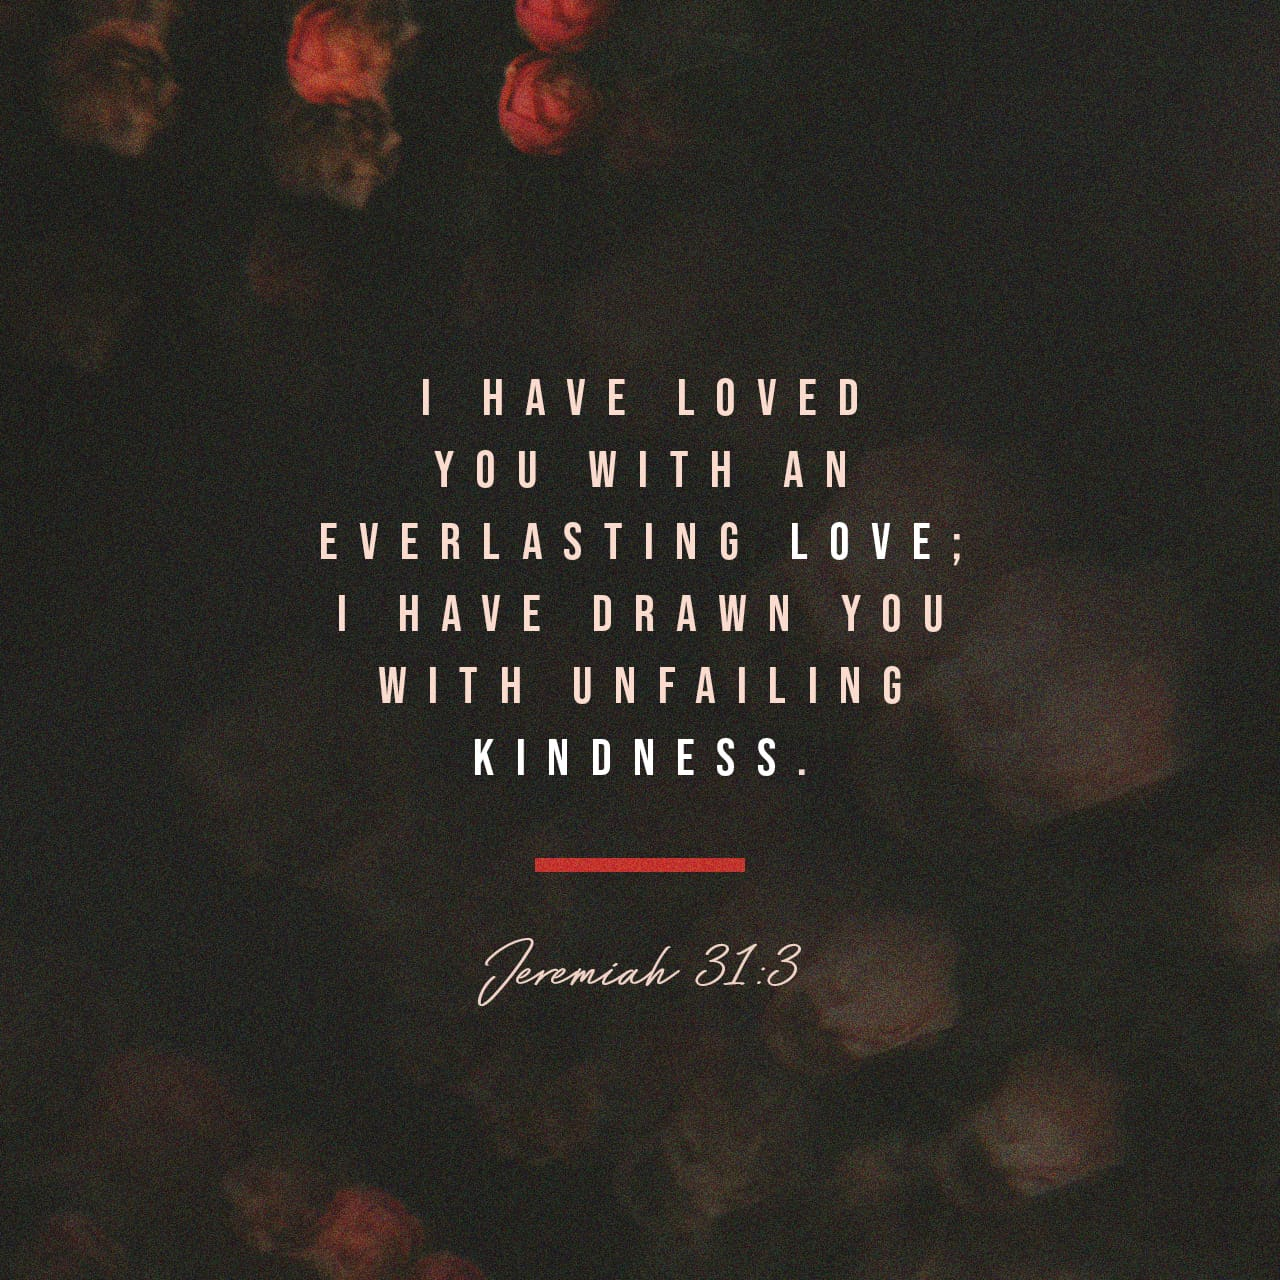 Jeremiah 31:3 The LORD hath appeared of old unto me, saying, Yea, I have loved thee with an everlasting love: therefore with lovingkindness have I drawn thee. | King James Version (KJV) |